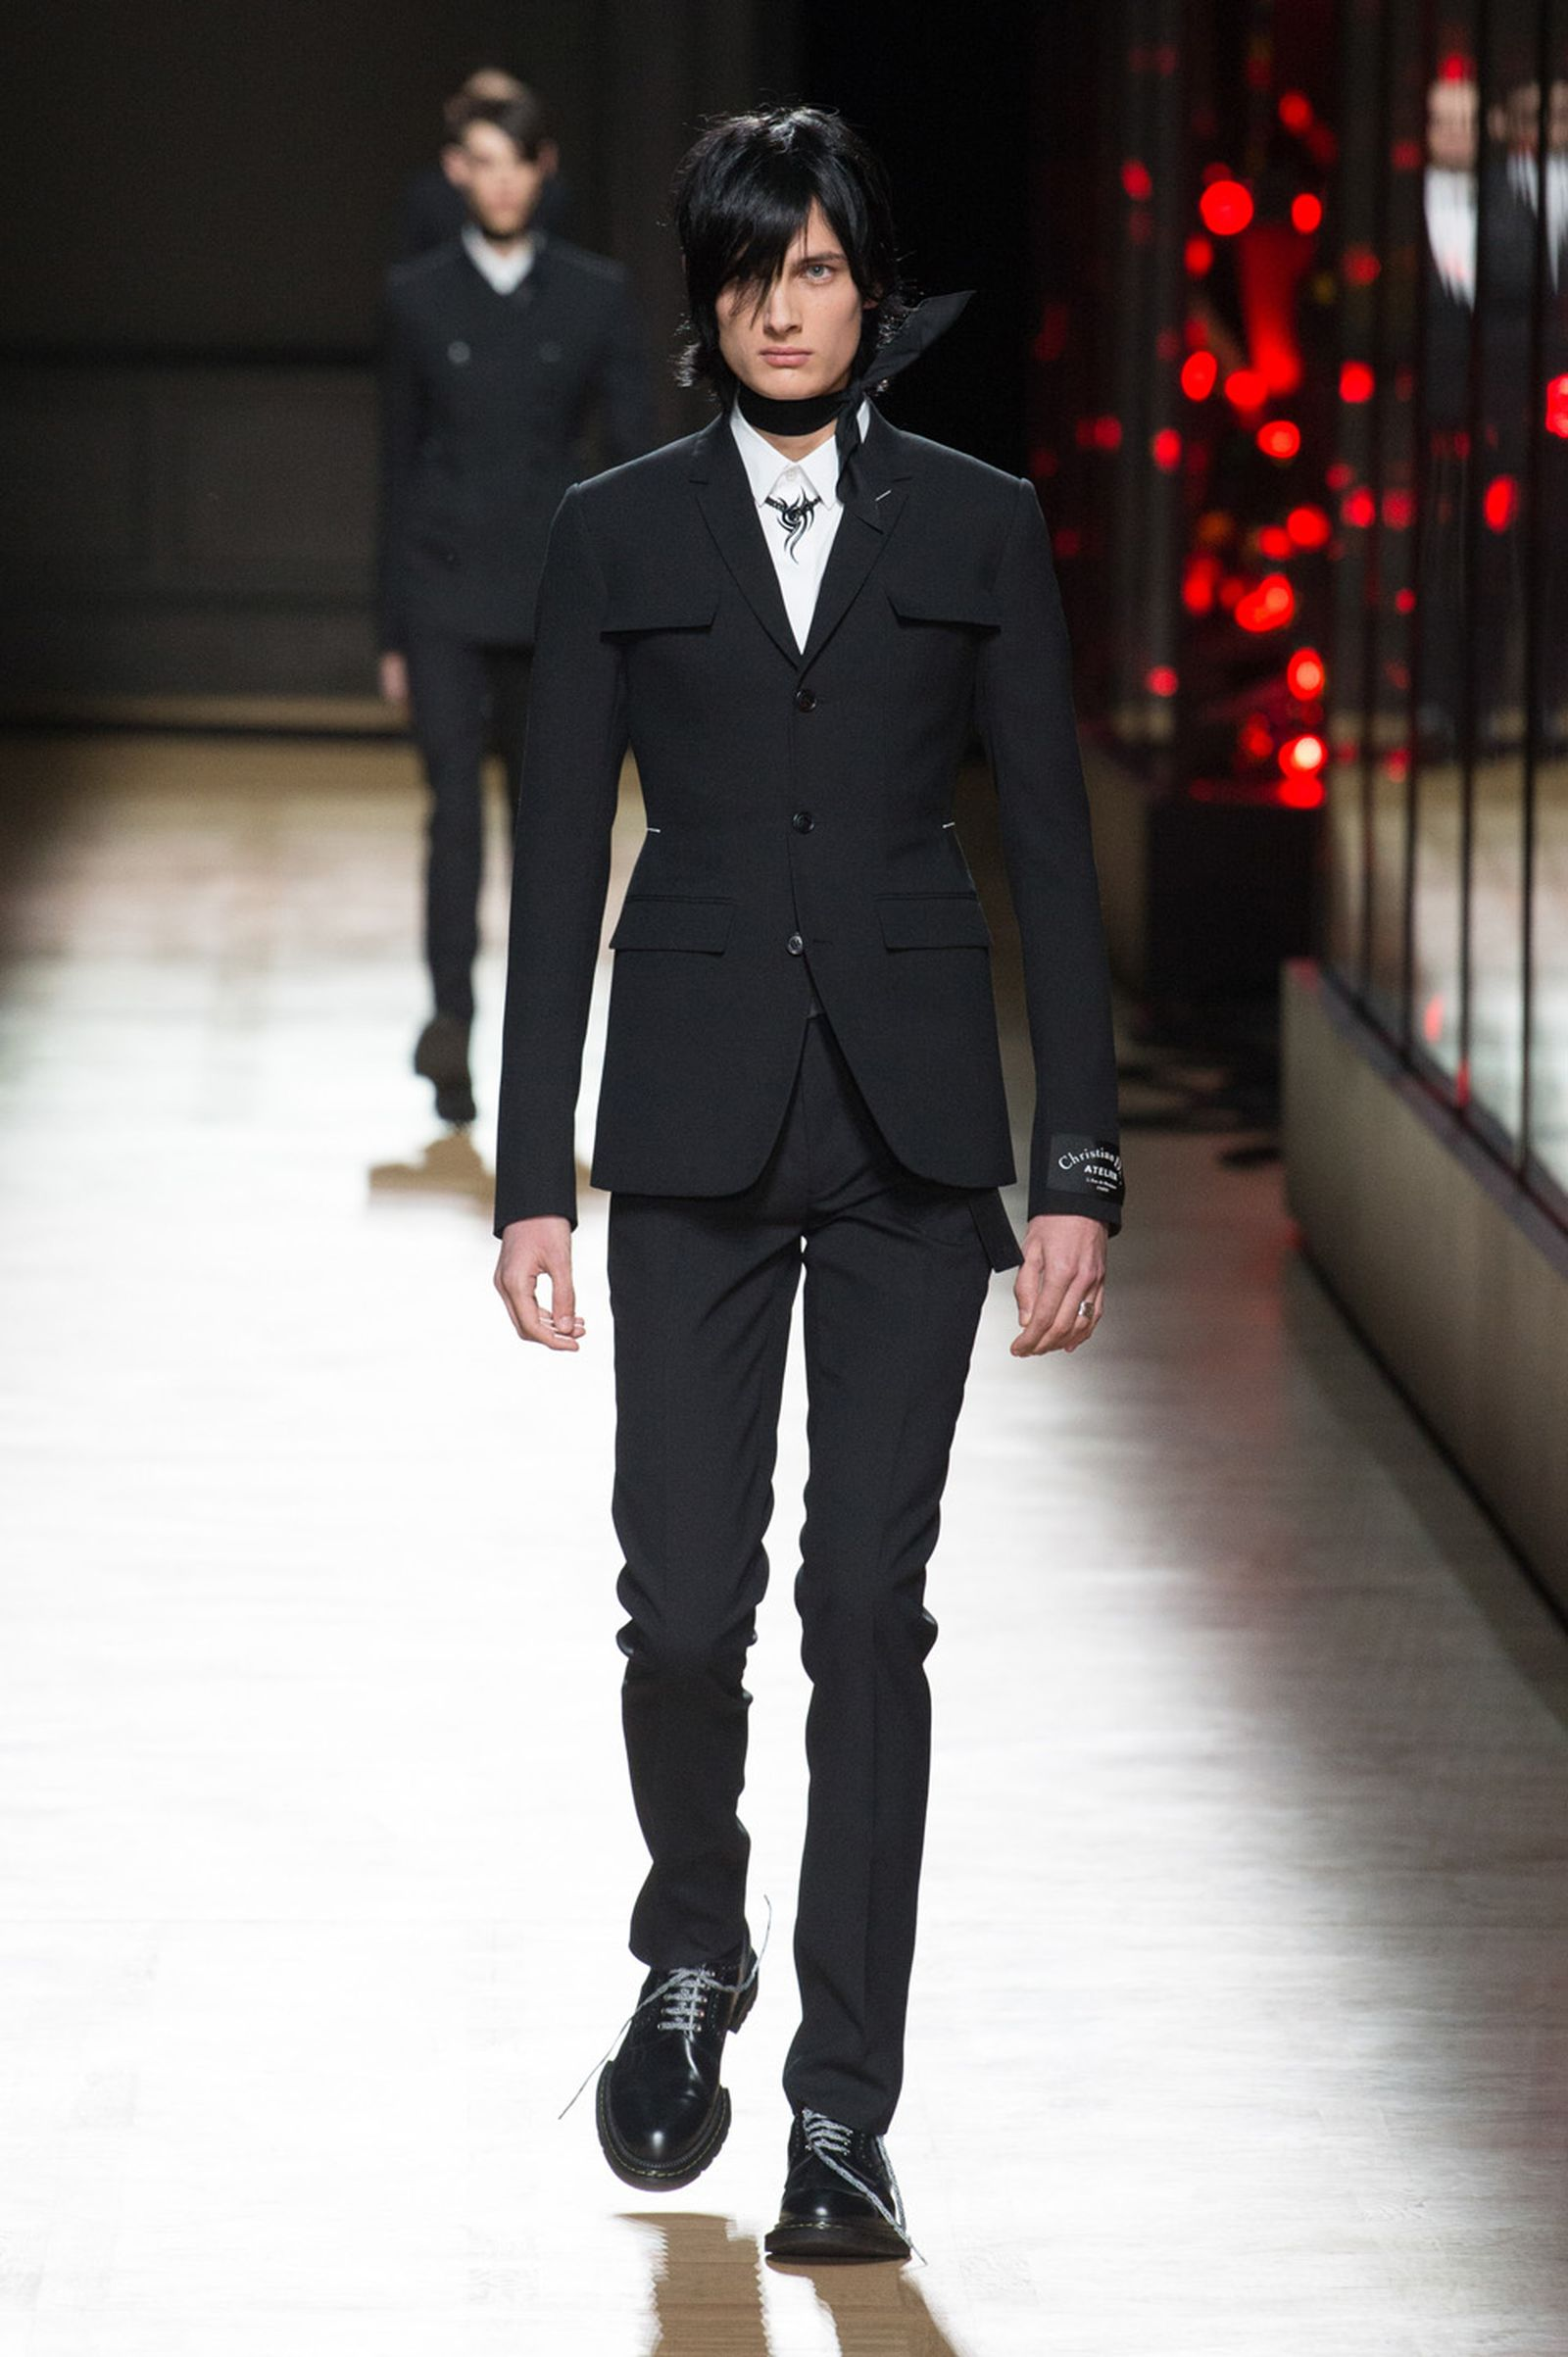 DIOR HOMME WINTER 18 19 BY PATRICE STABLE look03 Fall/WInter 2018 runway